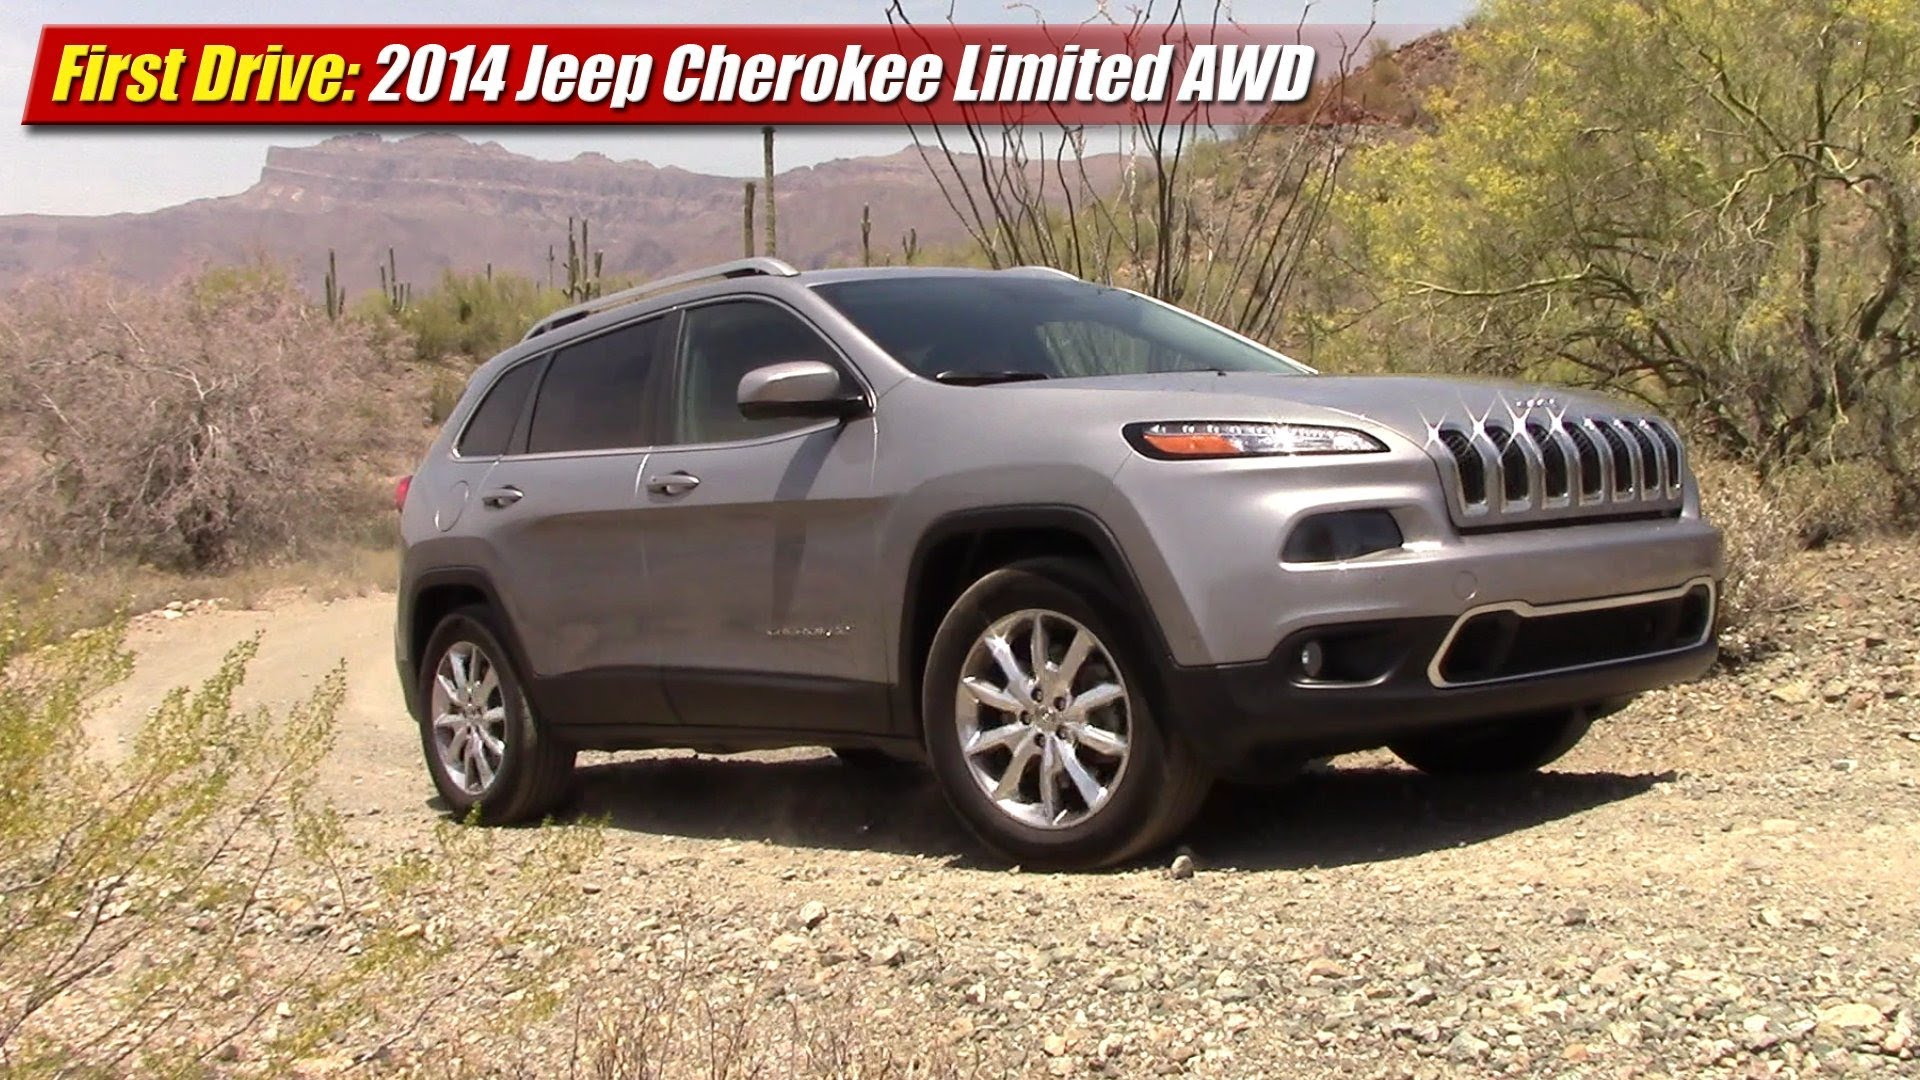 First Drive: 2014 Jeep Cherokee Limited AWD - TestDriven.TV